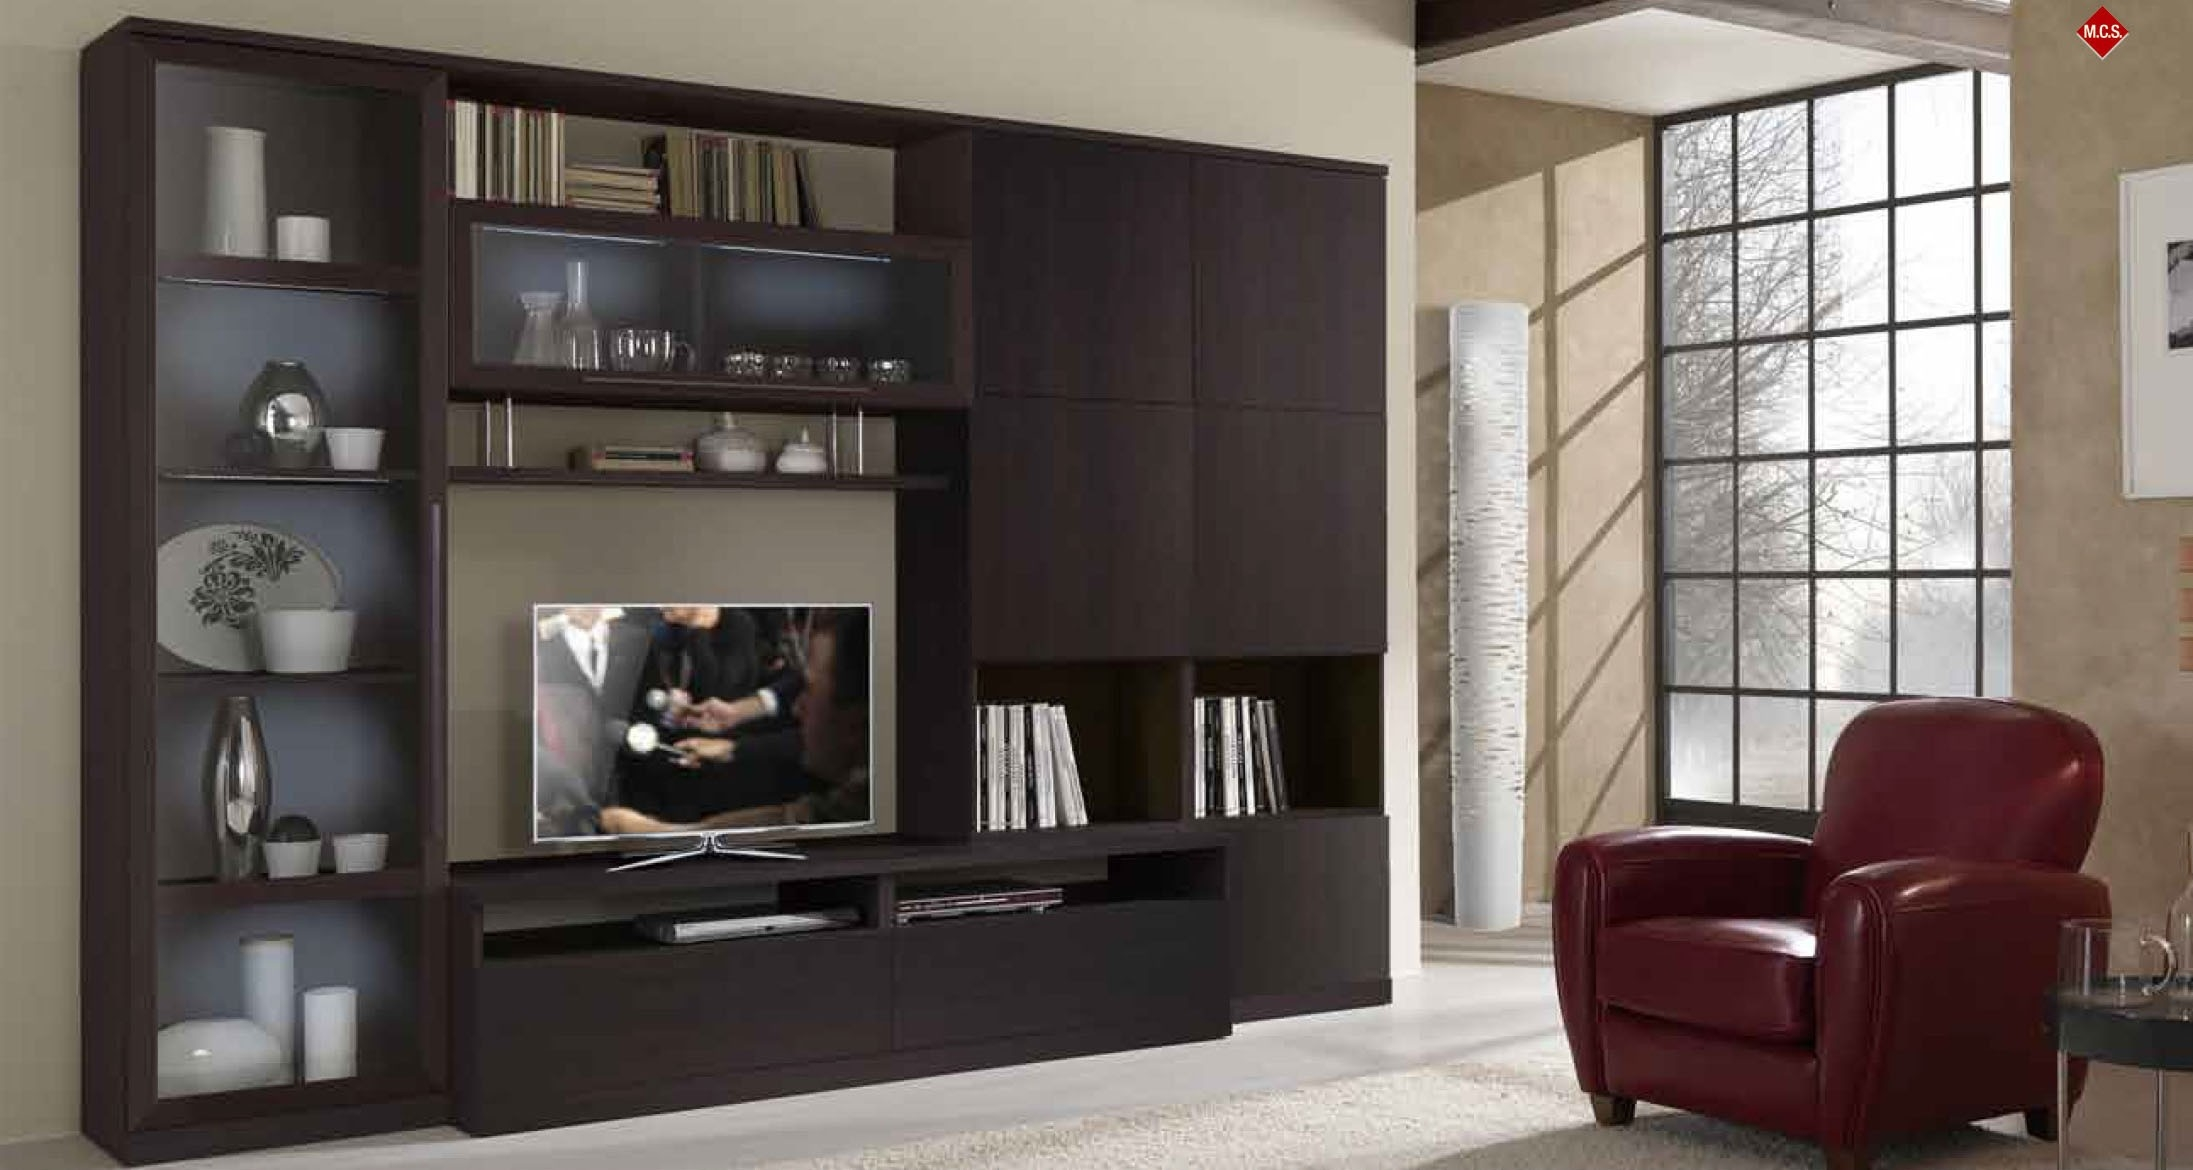 30 things you should know about Living room cabinets | Hawk Haven